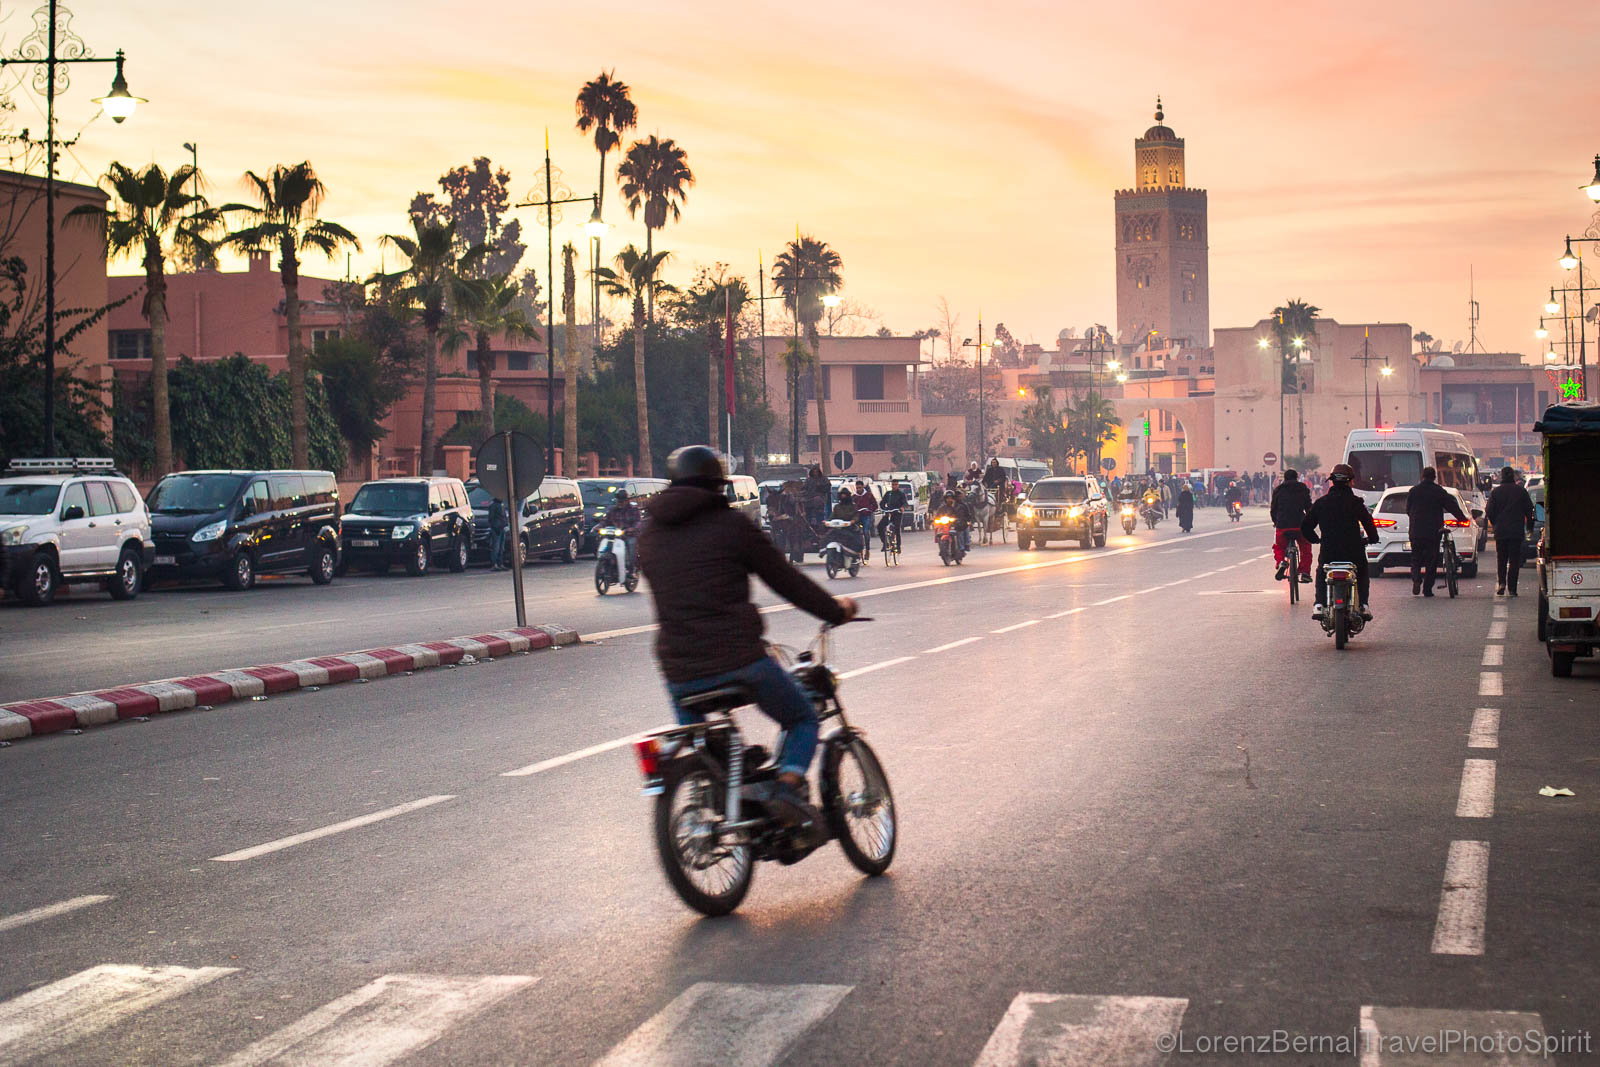 Sunset colours on a street around the Koutoubia Mosque in Marrakech